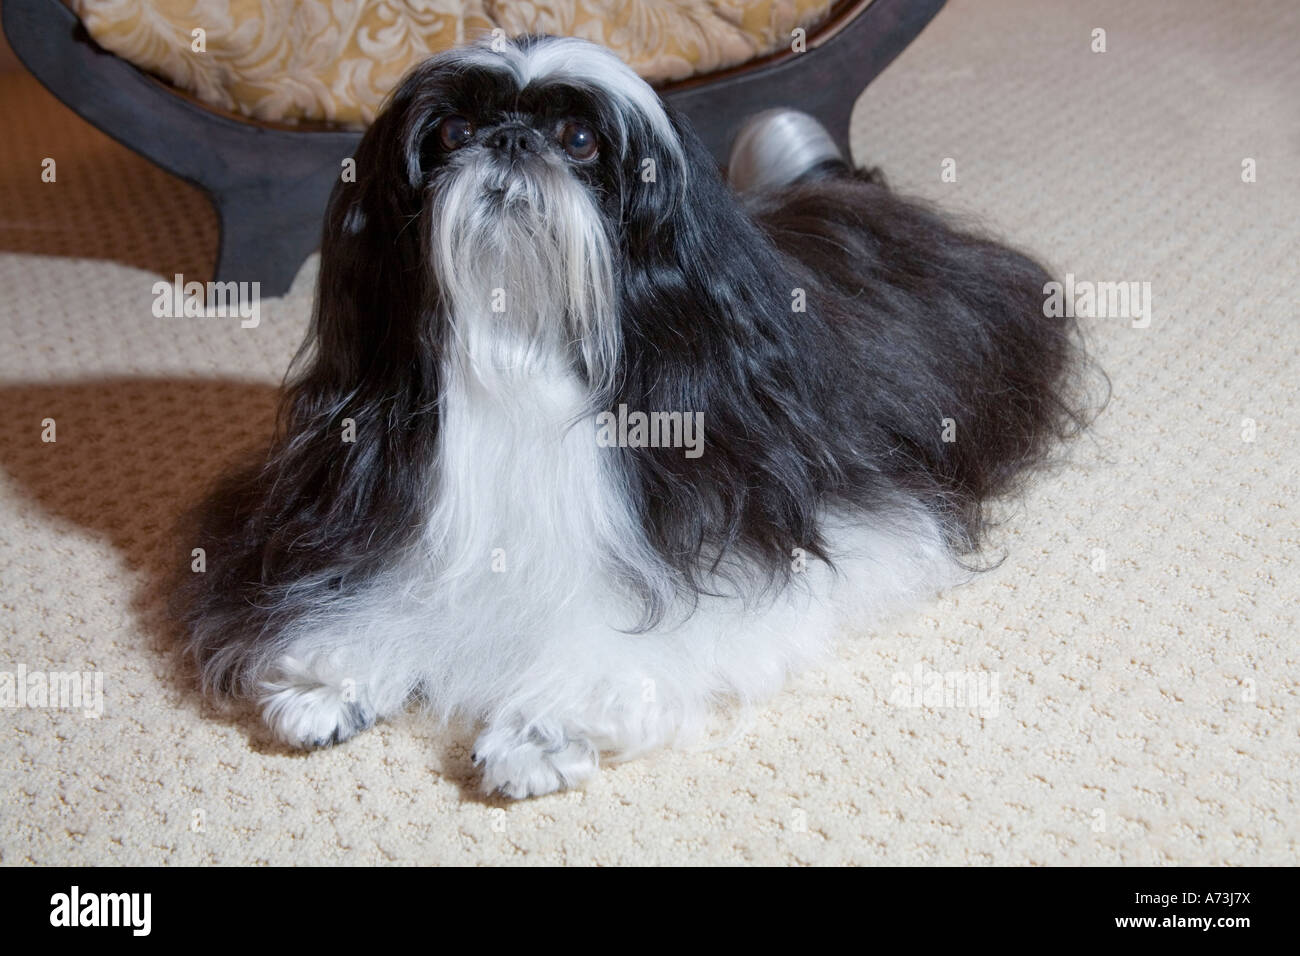 A Long Haired Black And White Shih Tzu Dog Sitting On A Beige Carpet